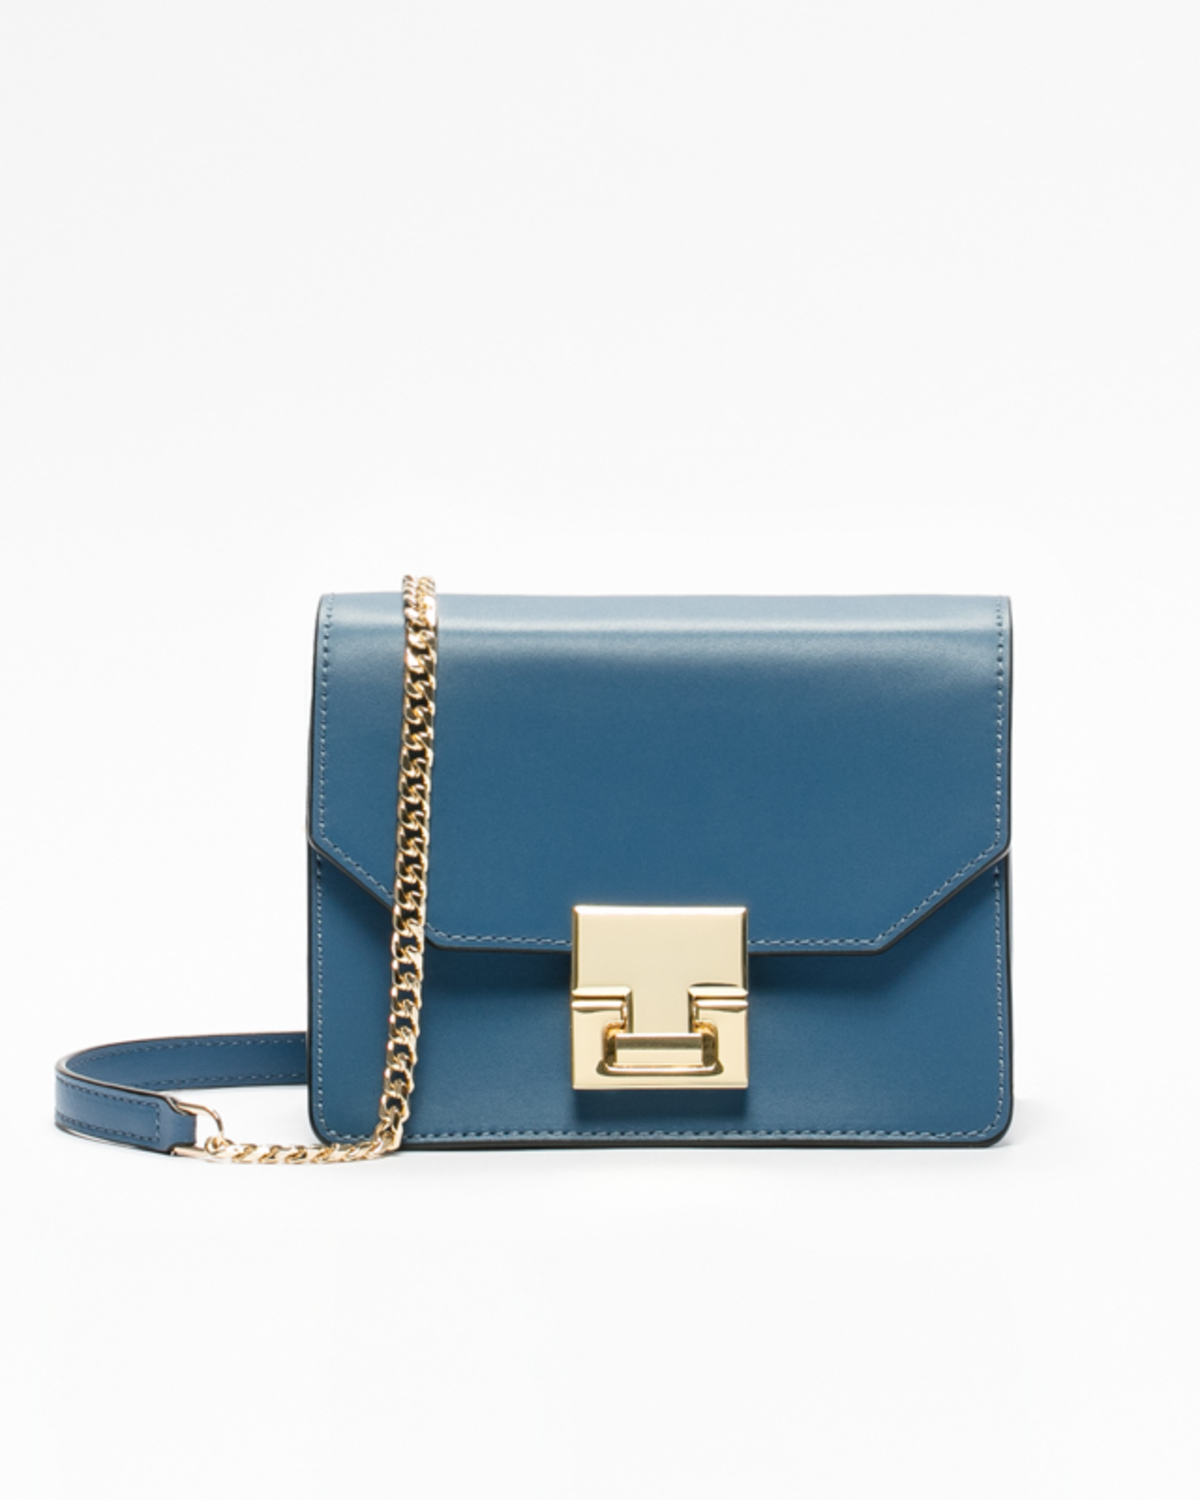 16b247ce065 Best Ivanka Trump's Bags That Are Actually Worth Your Money